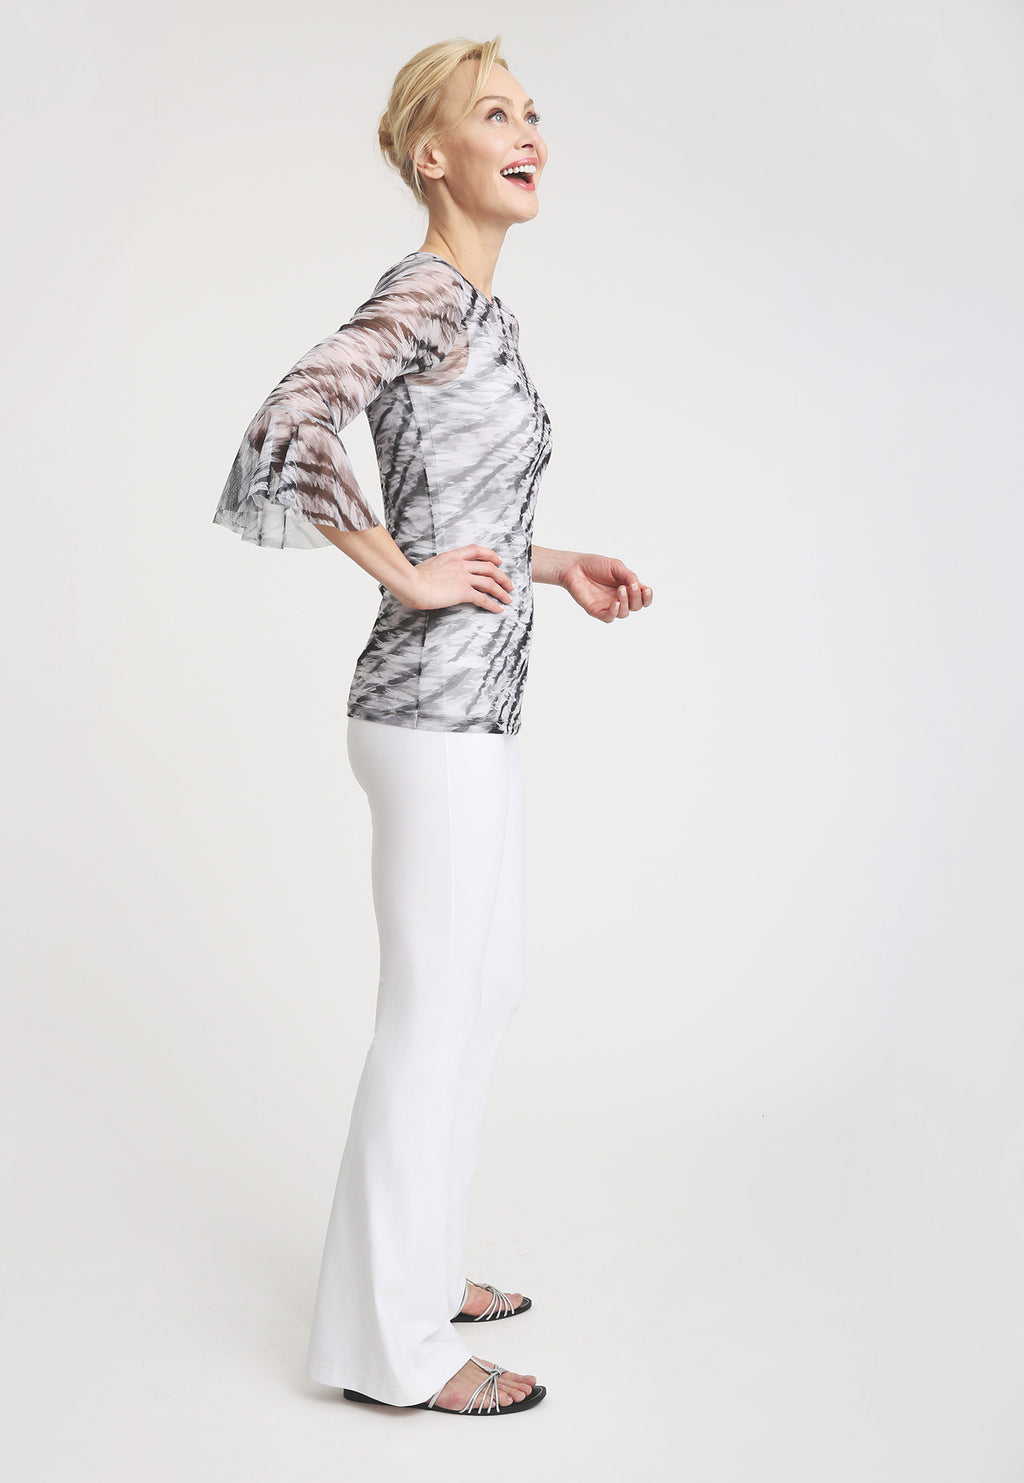 Long sleeve mesh black and white tiger print top and white pant